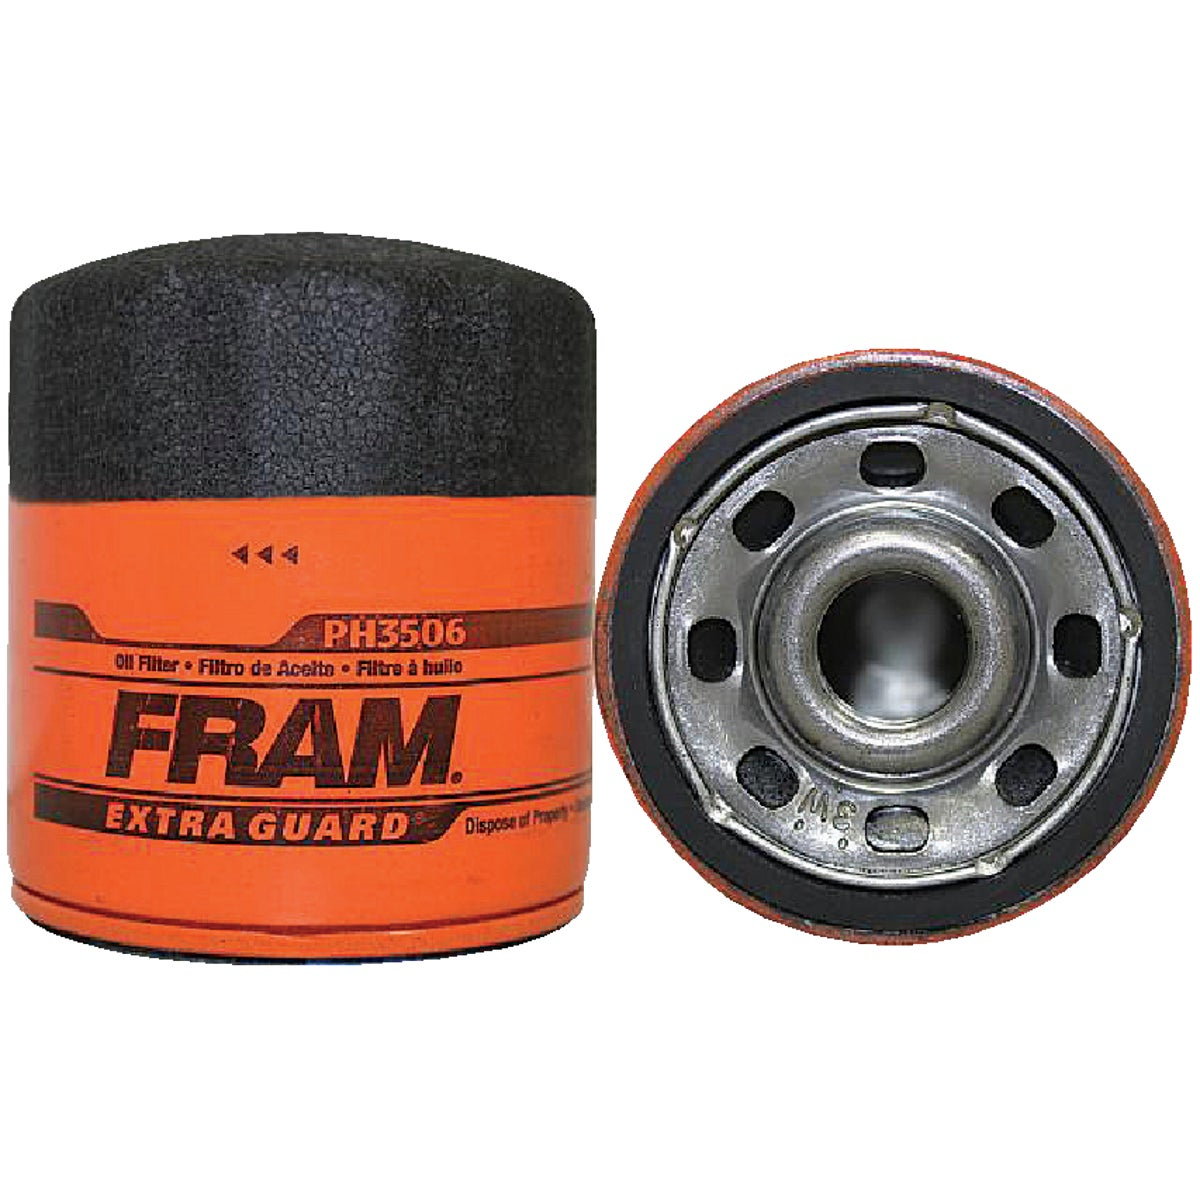 FRAM ALL-PURP OIL FILTER